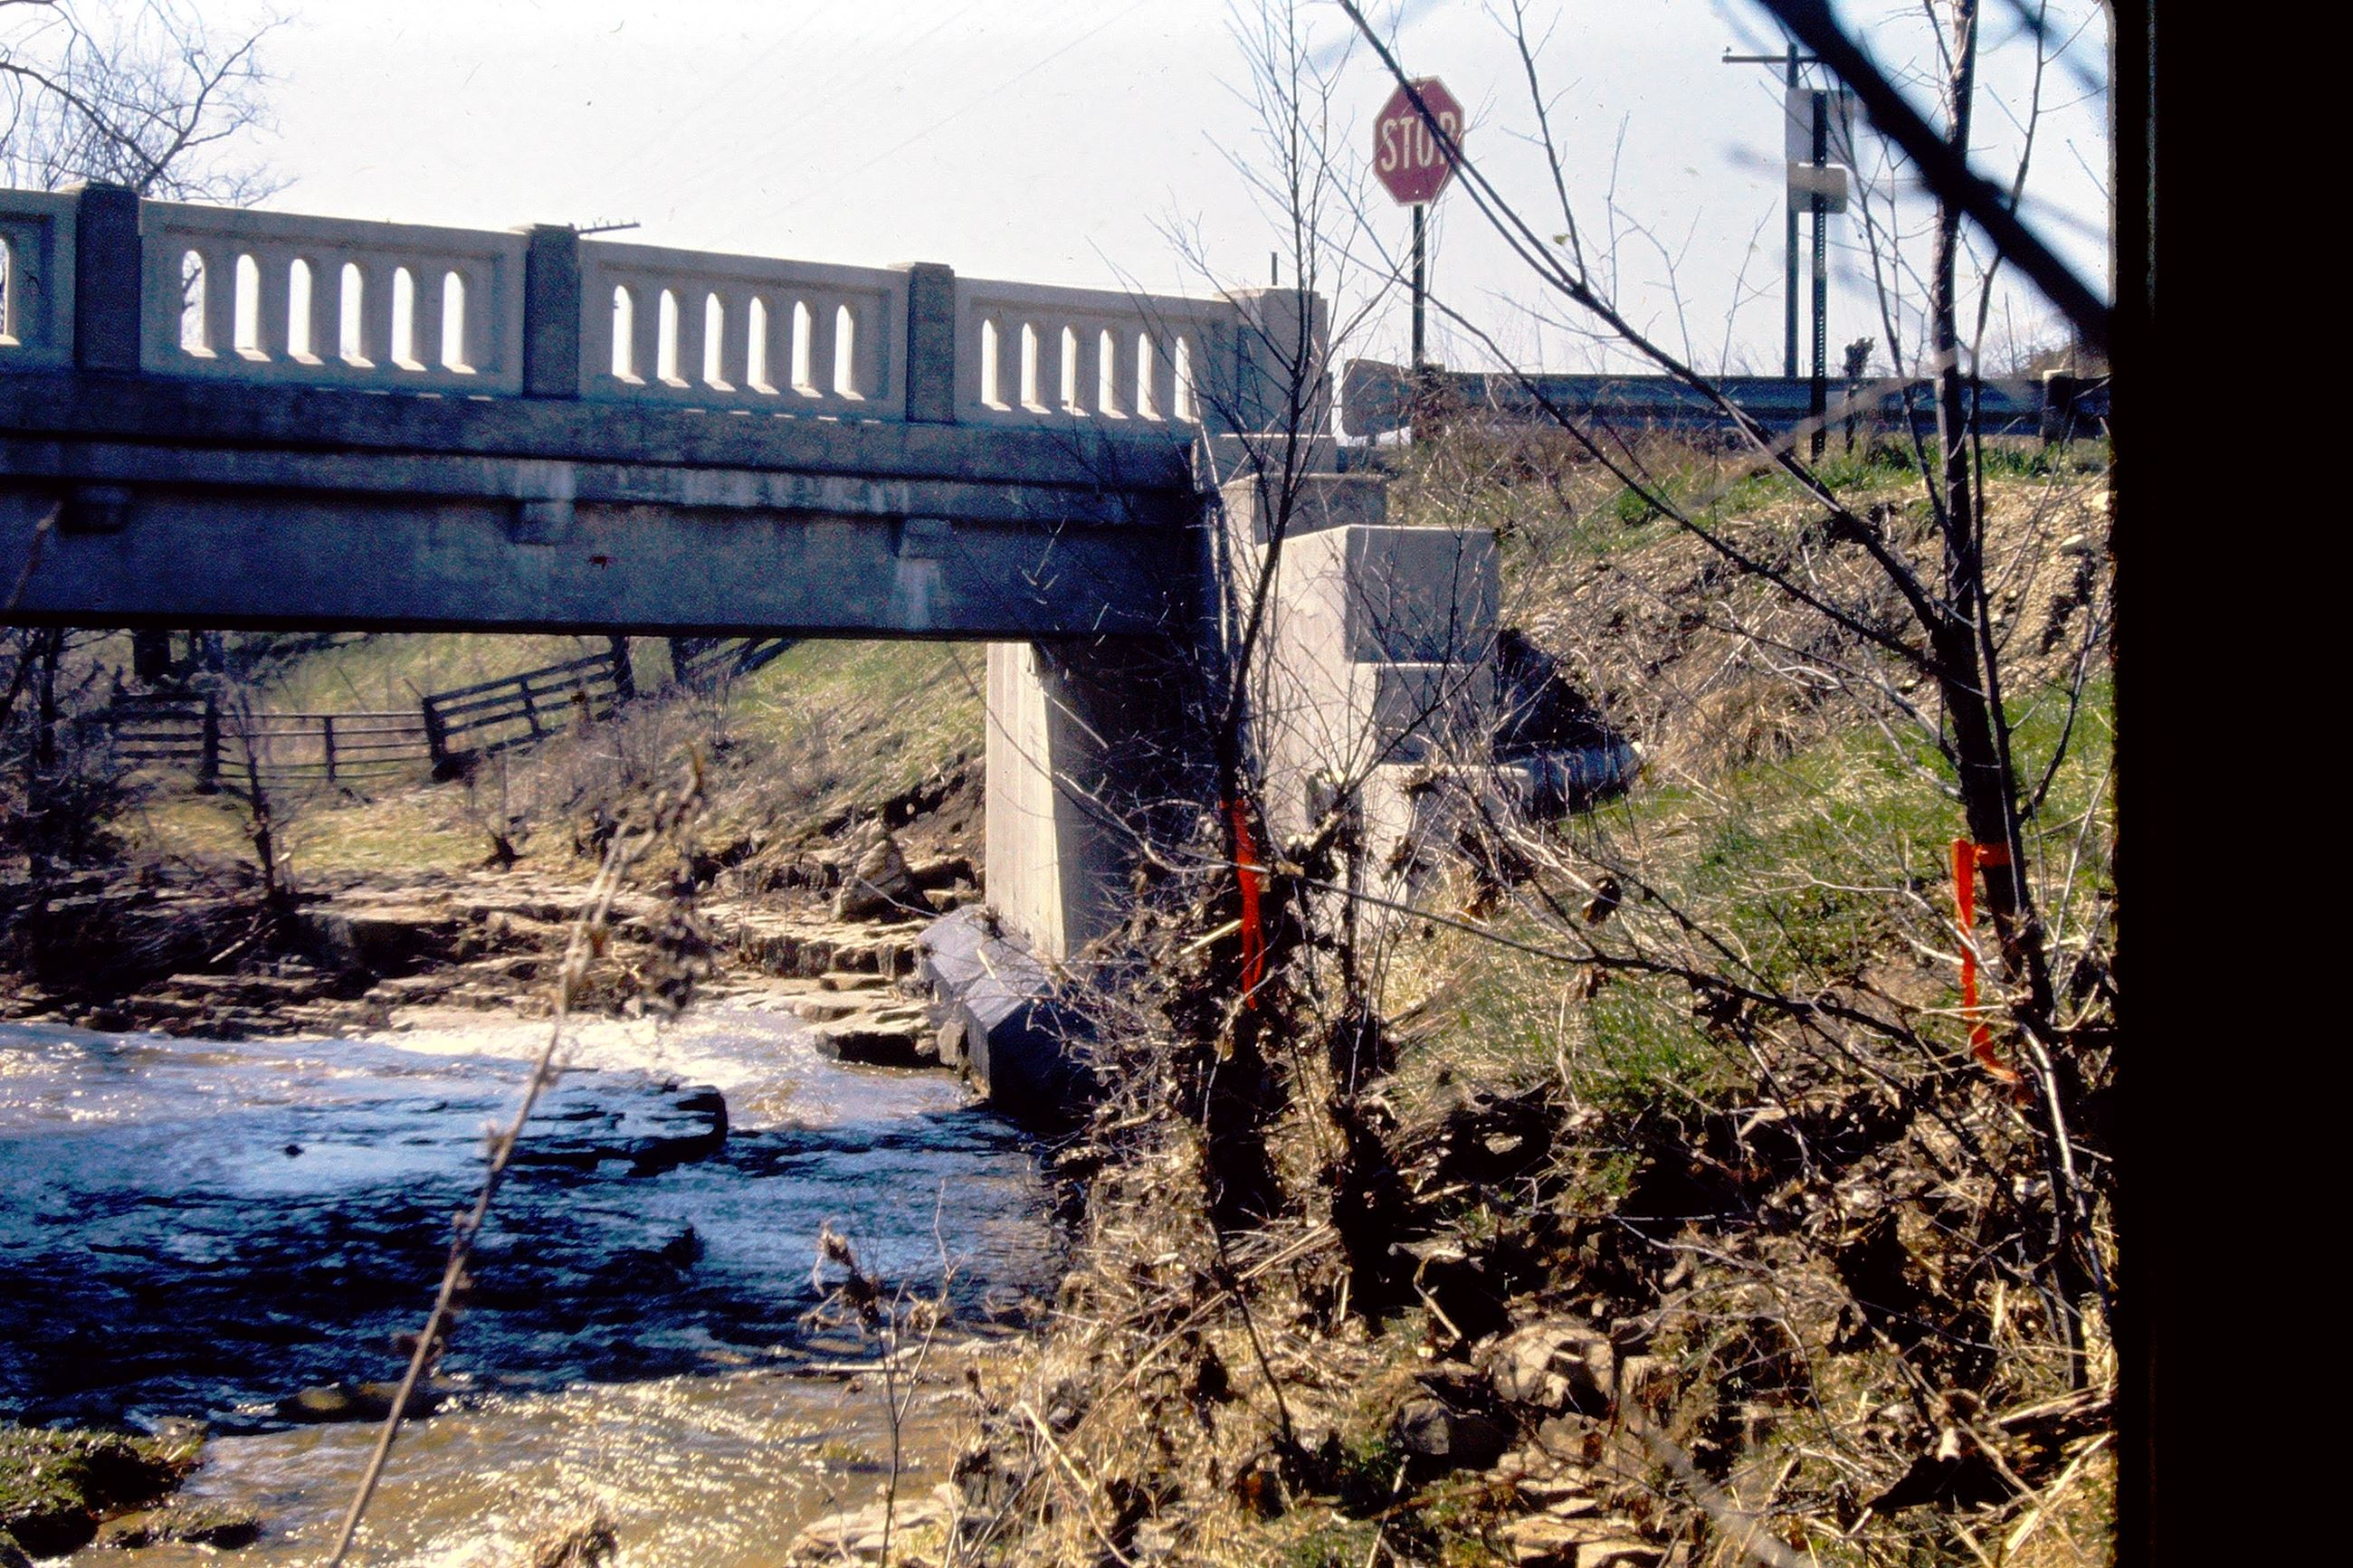 1972_Red_flags_indicate_water_level_at_crd5_jefferson